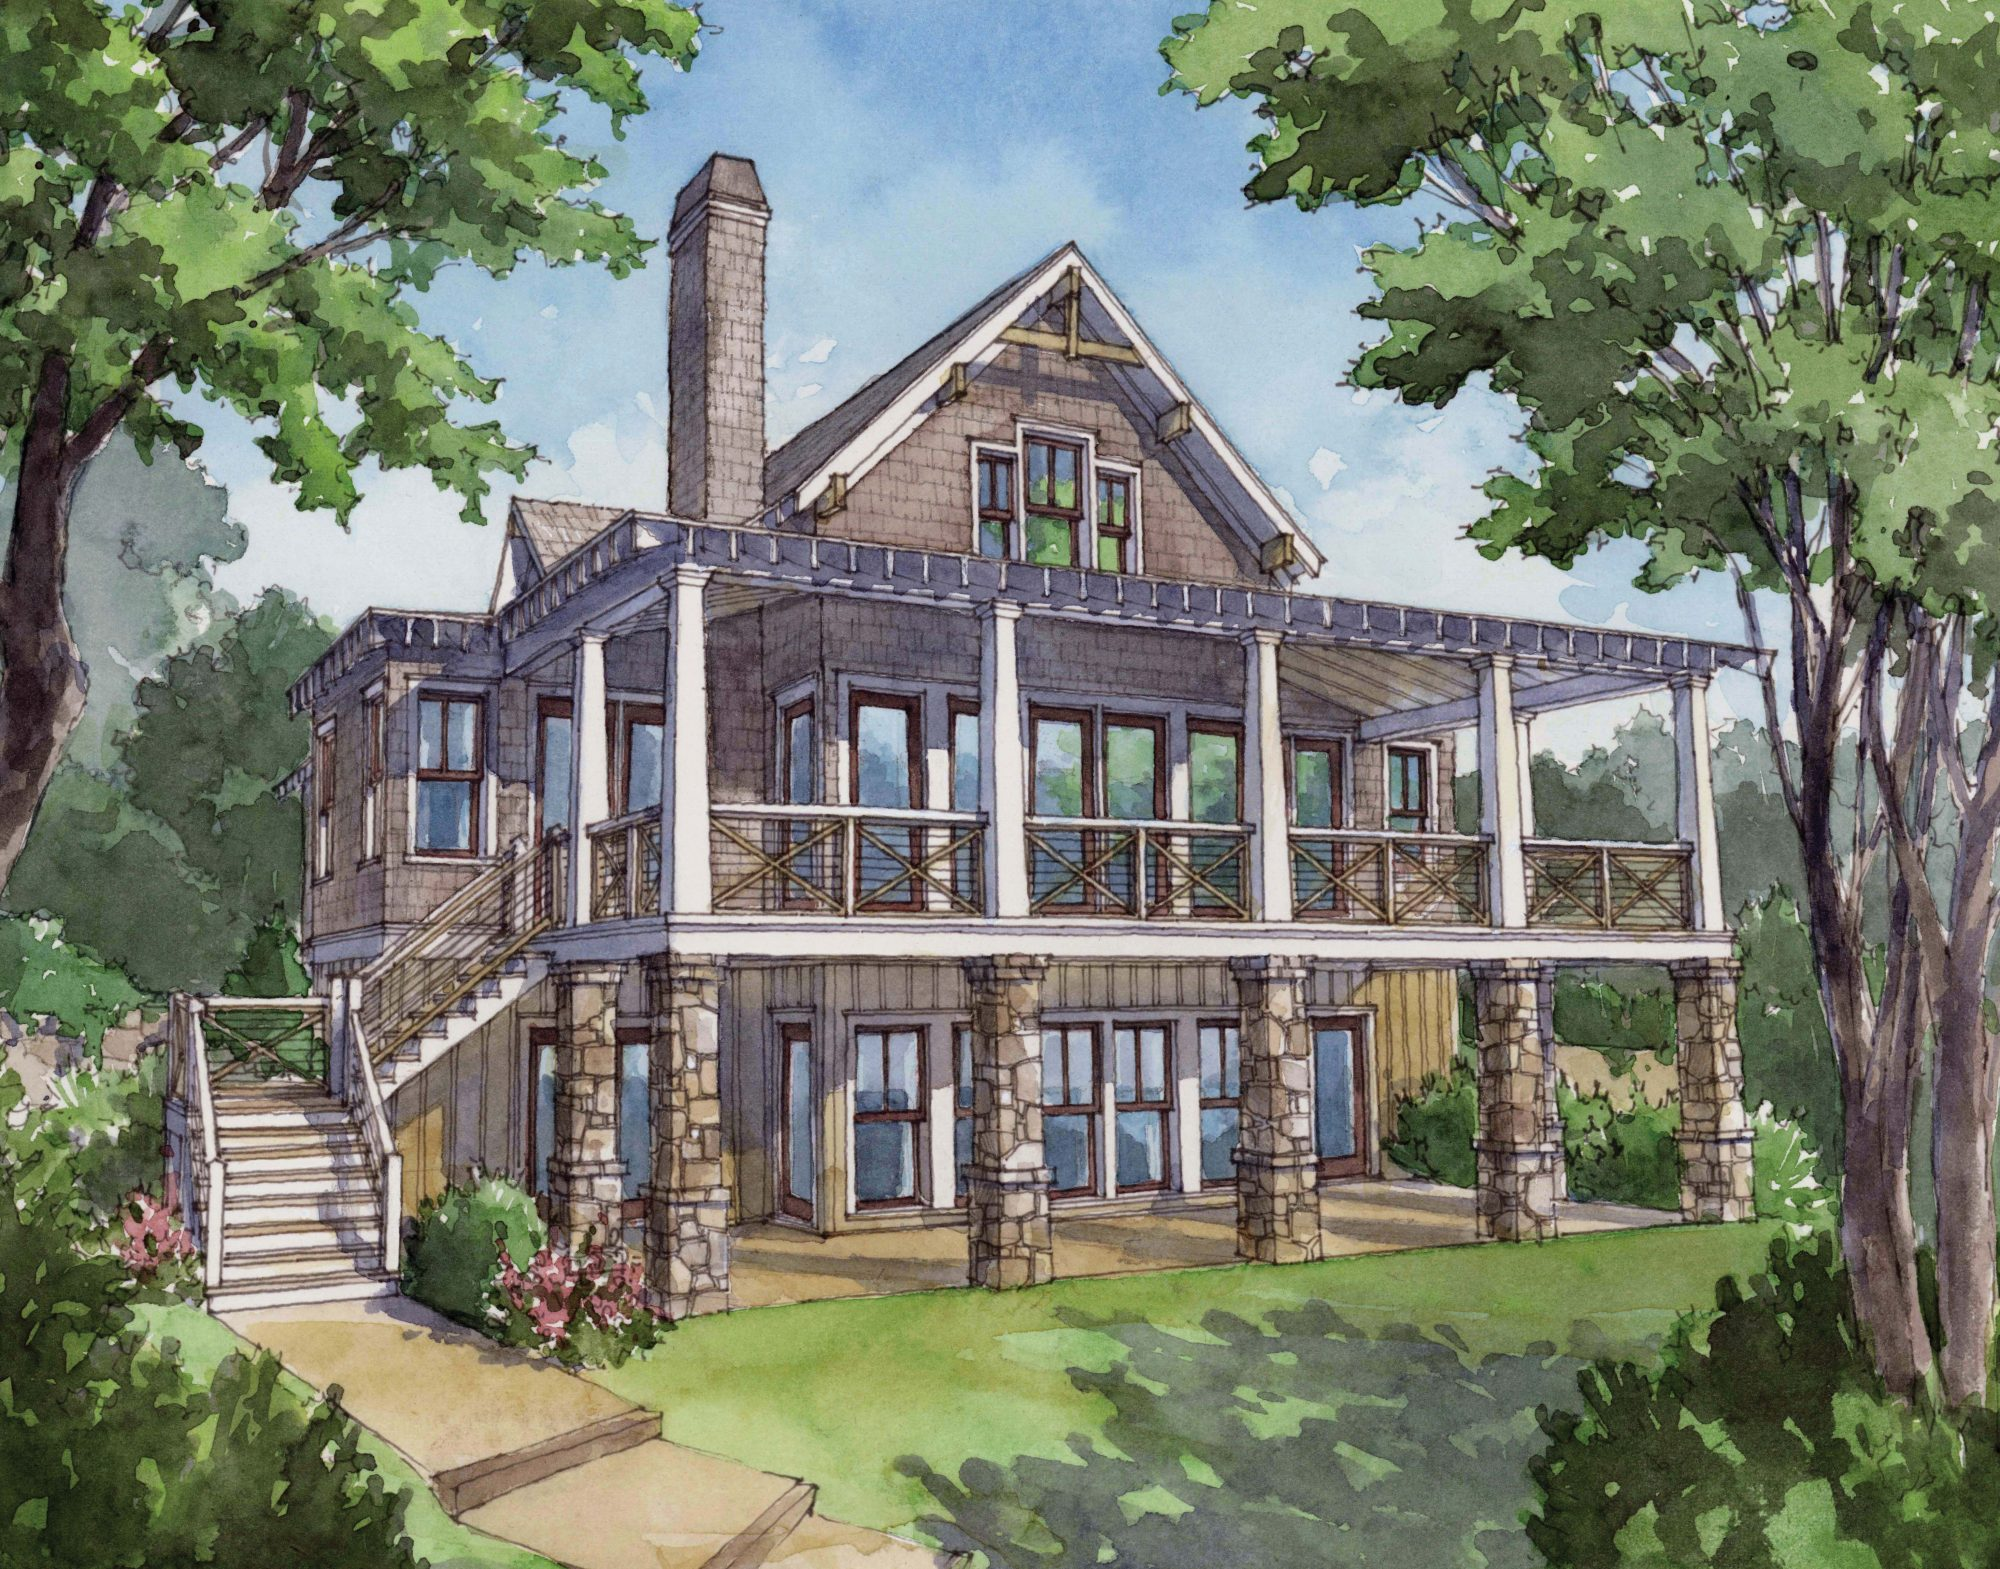 Southern living house plan 1757 southern living for One story lake house plans